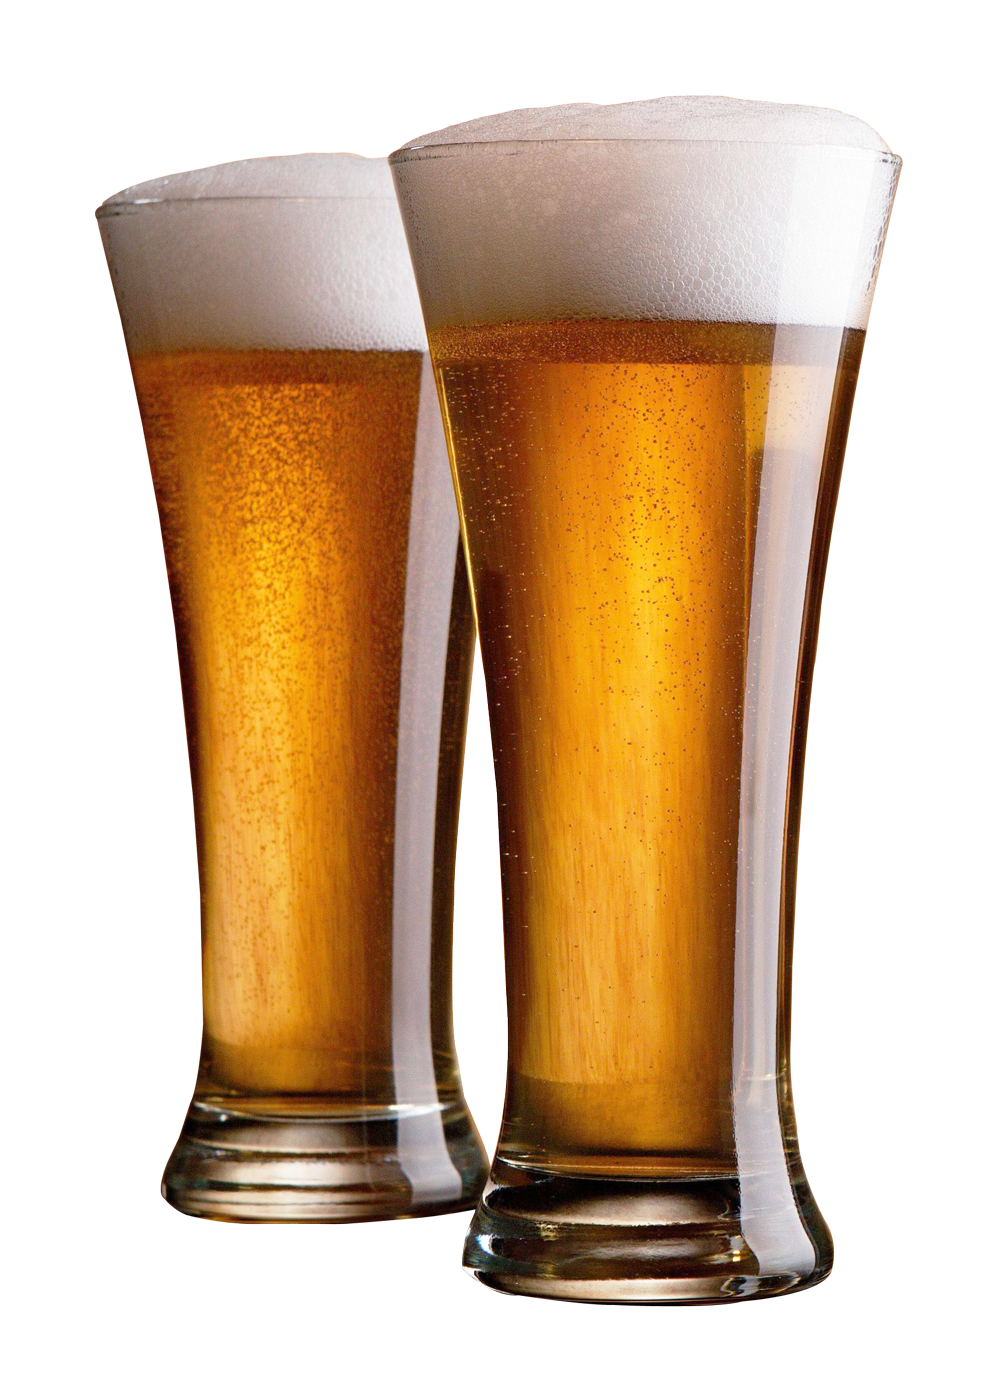 Alcohol glass png. Beer glasses image purepng